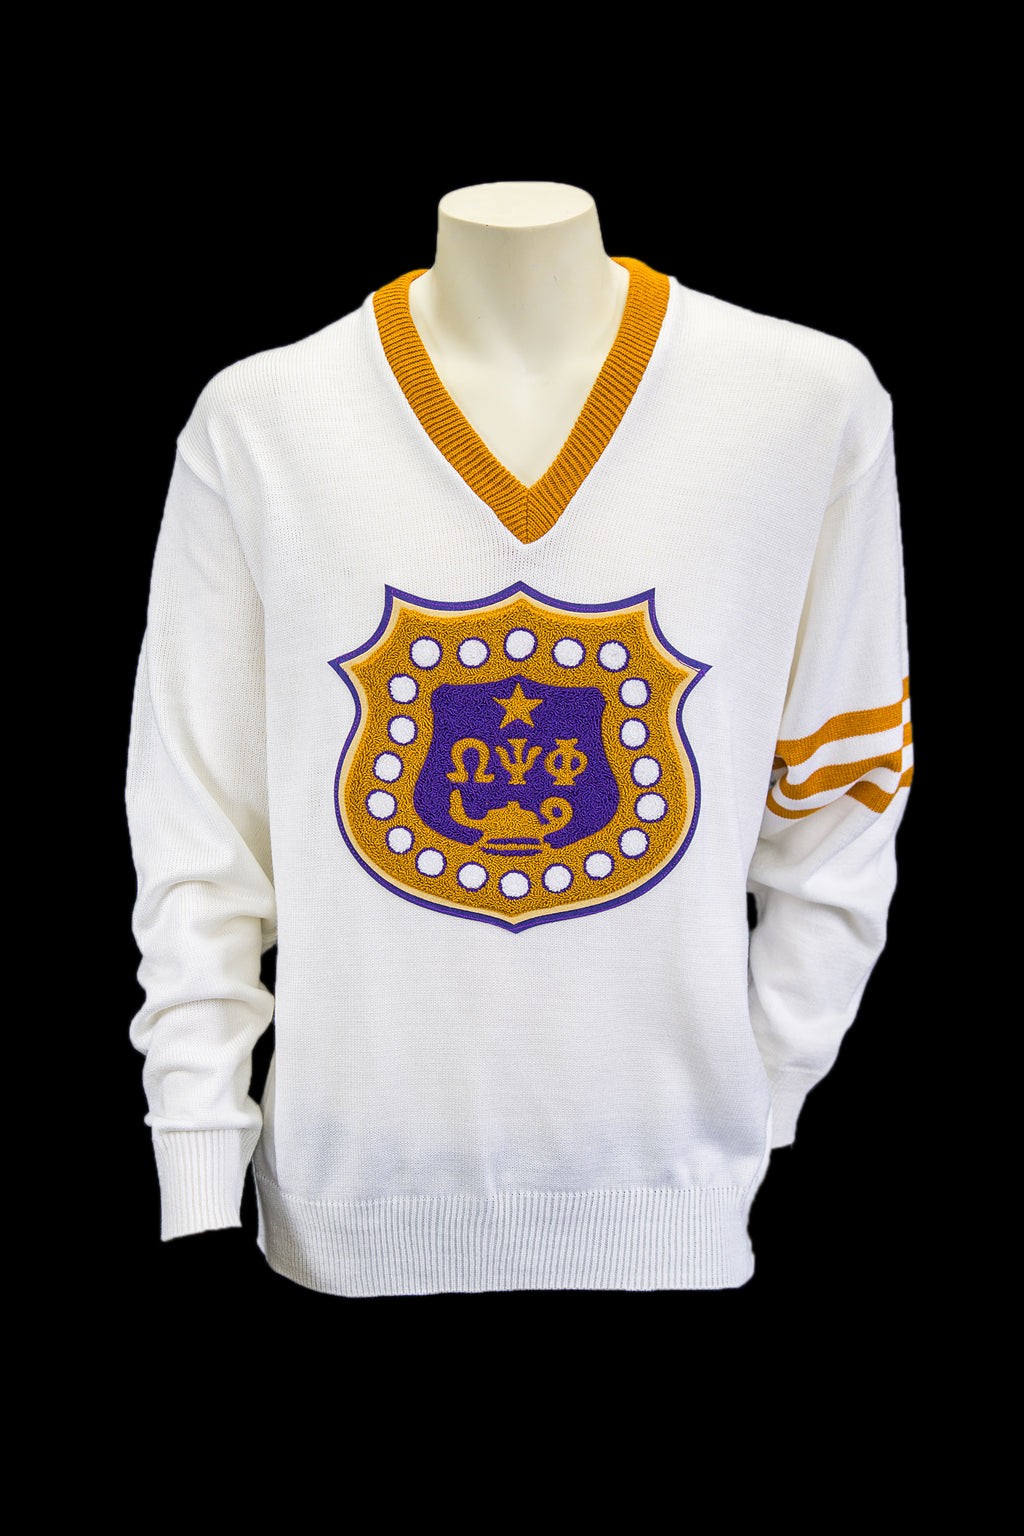 Omega White Vneck sweater with chenille shield patch